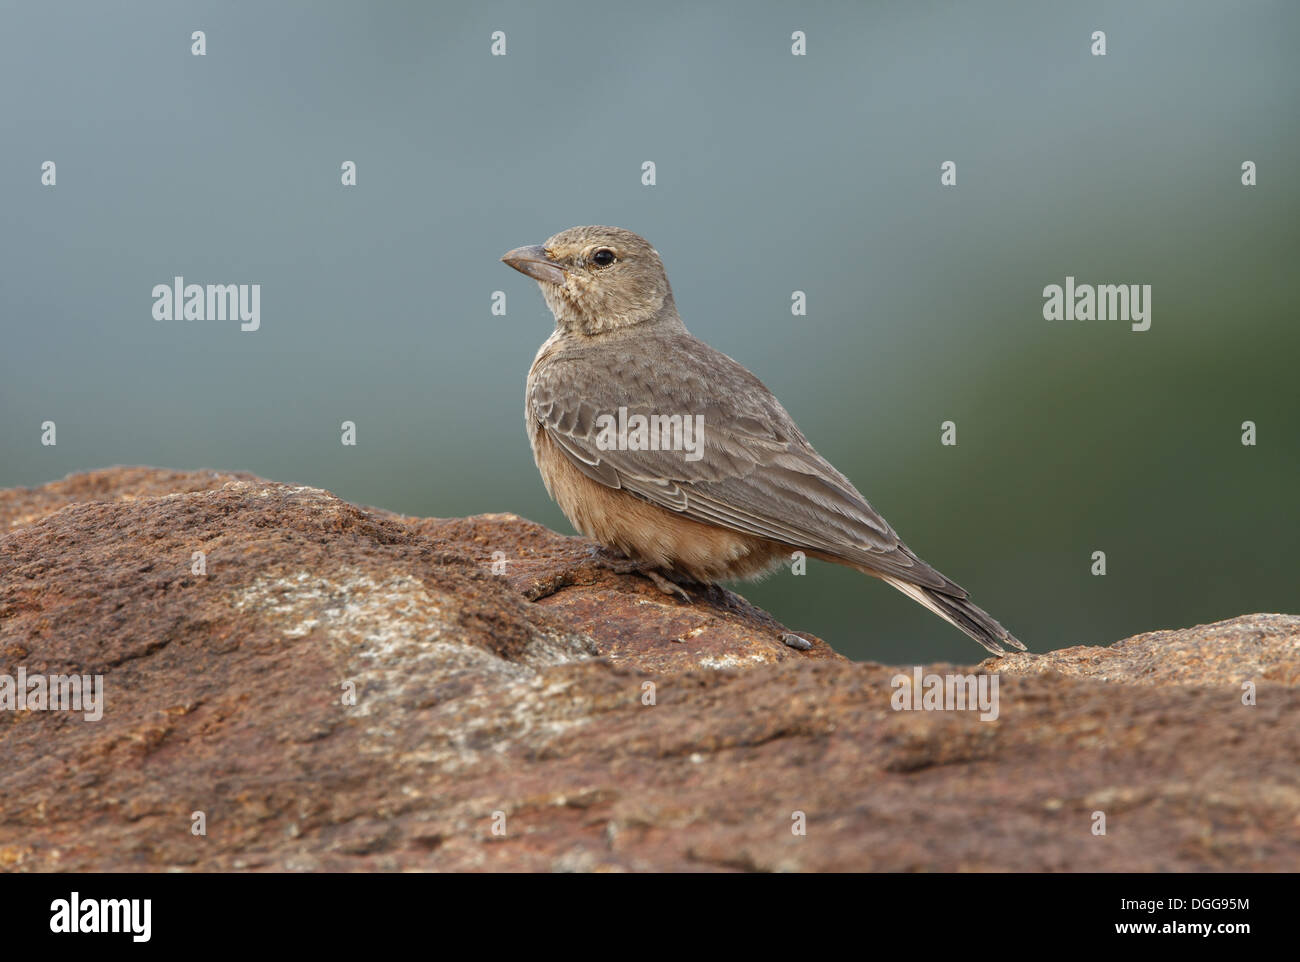 Rufous-tailed Lark (Ammomanes phoenicura) adult, standing on rock, Nandi Hills, Bangalore, Karnataka, India, November - Stock Image